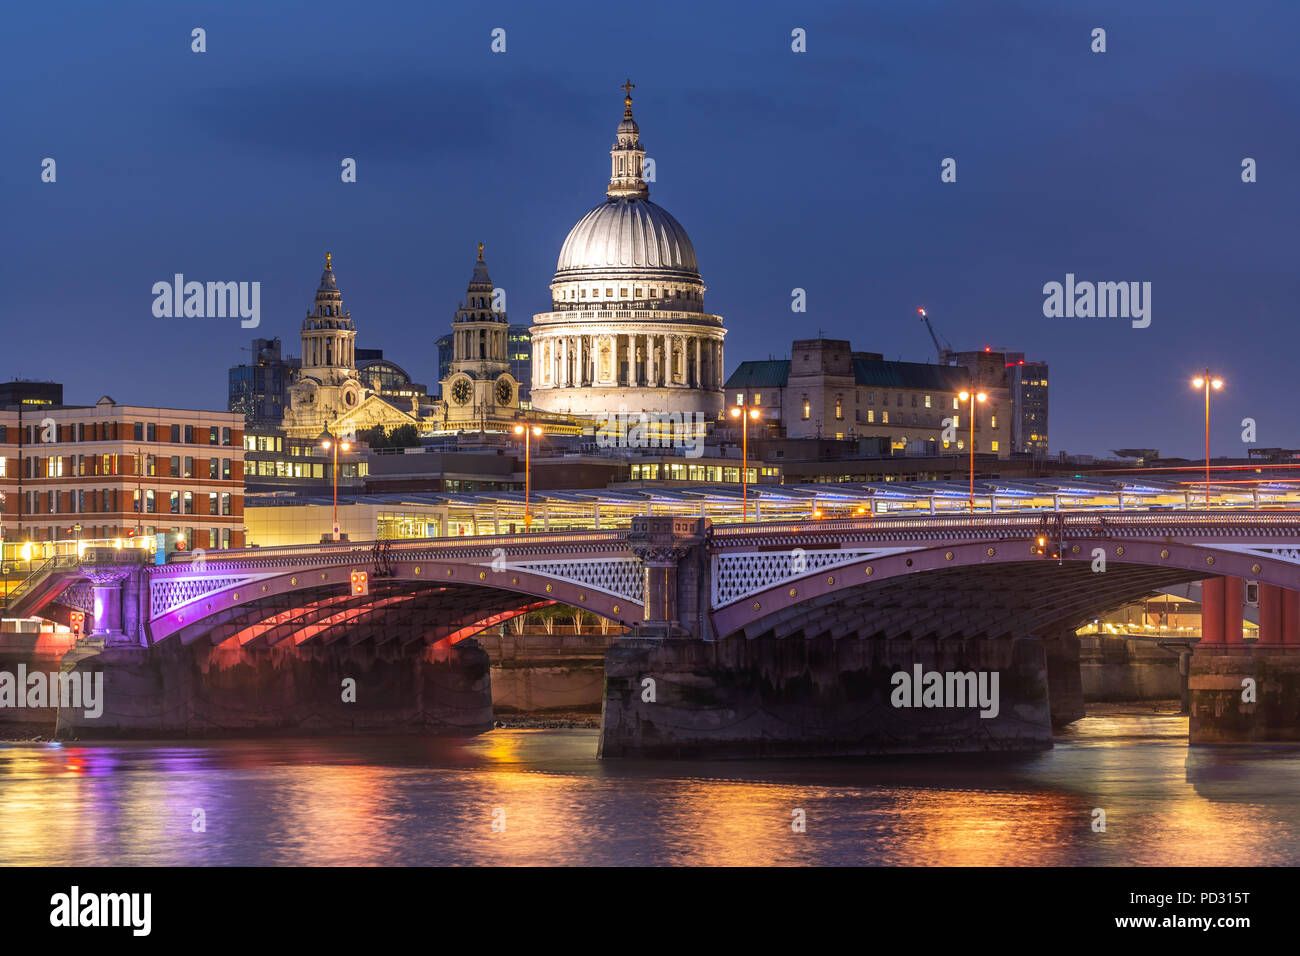 St paul cathedral with river thames sunset twilight in London UK. - Stock Image